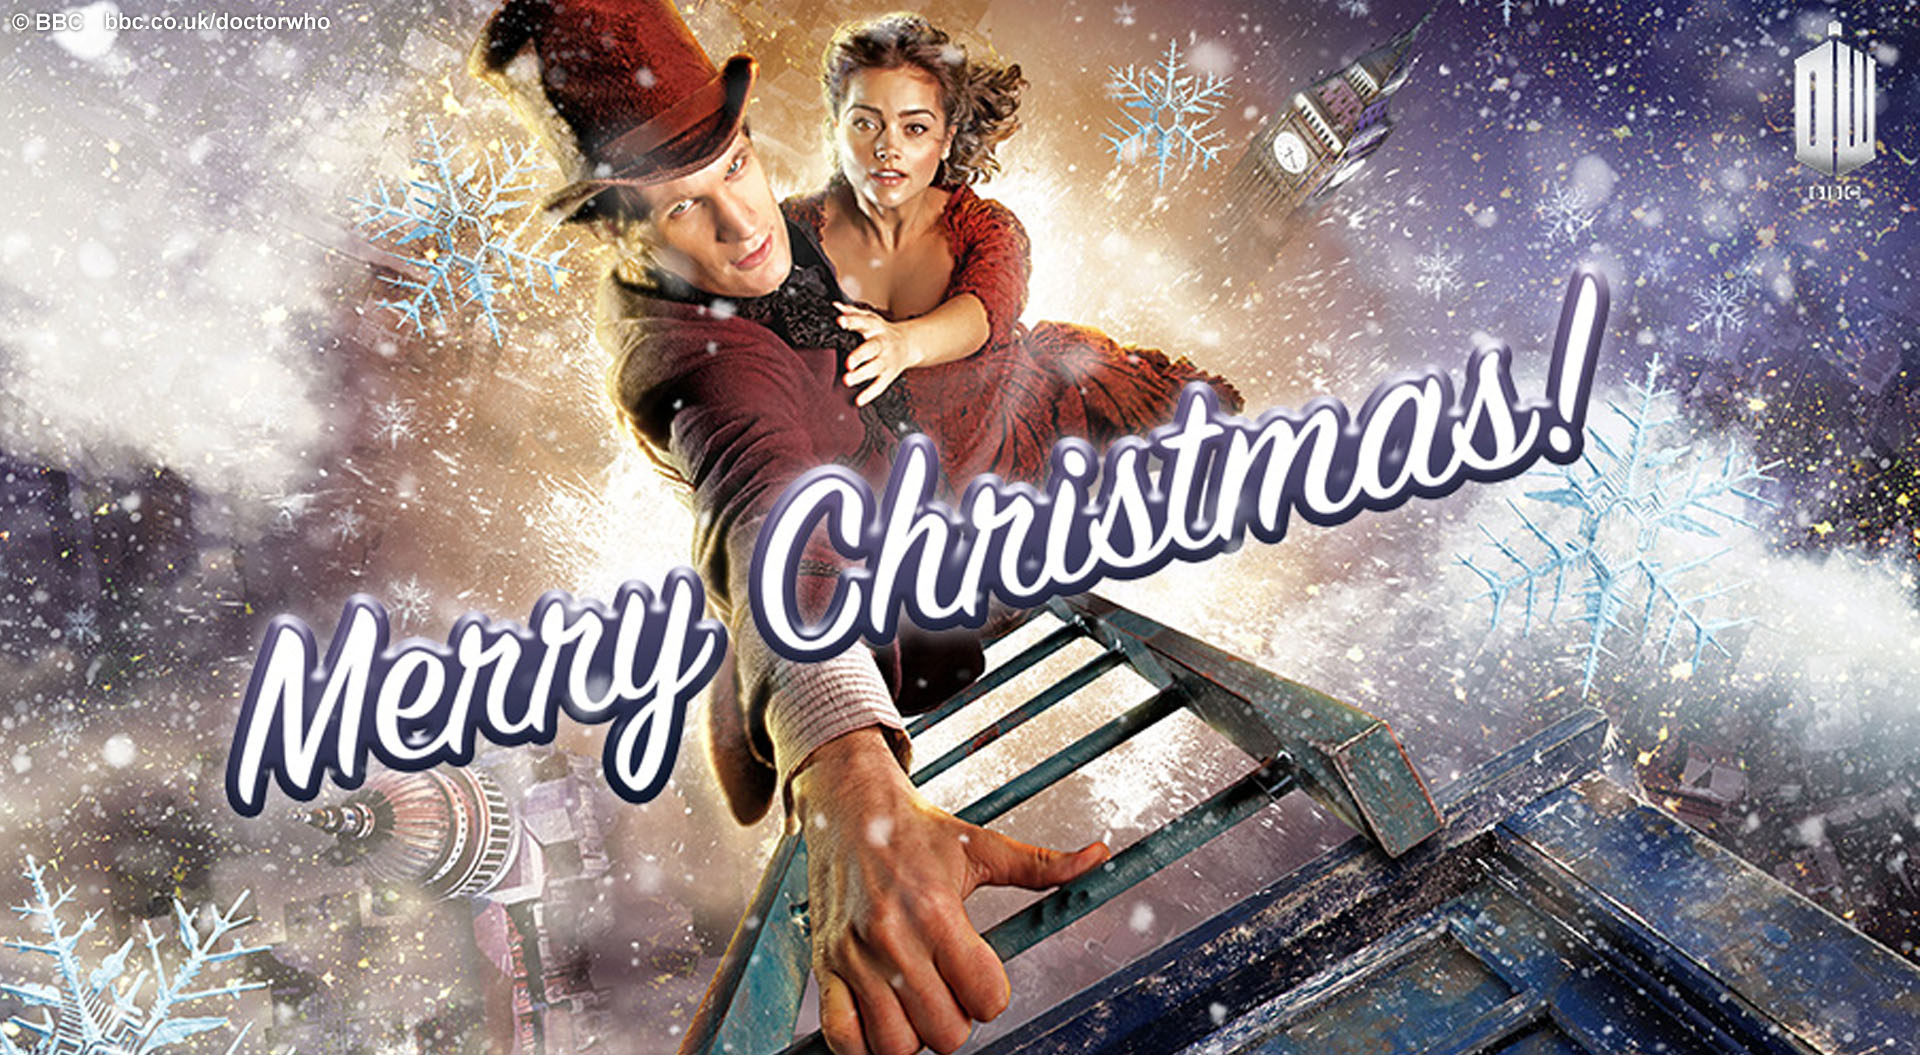 BBC Latest News - Doctor Who - Beautiful Doctor Who Christmas Cards